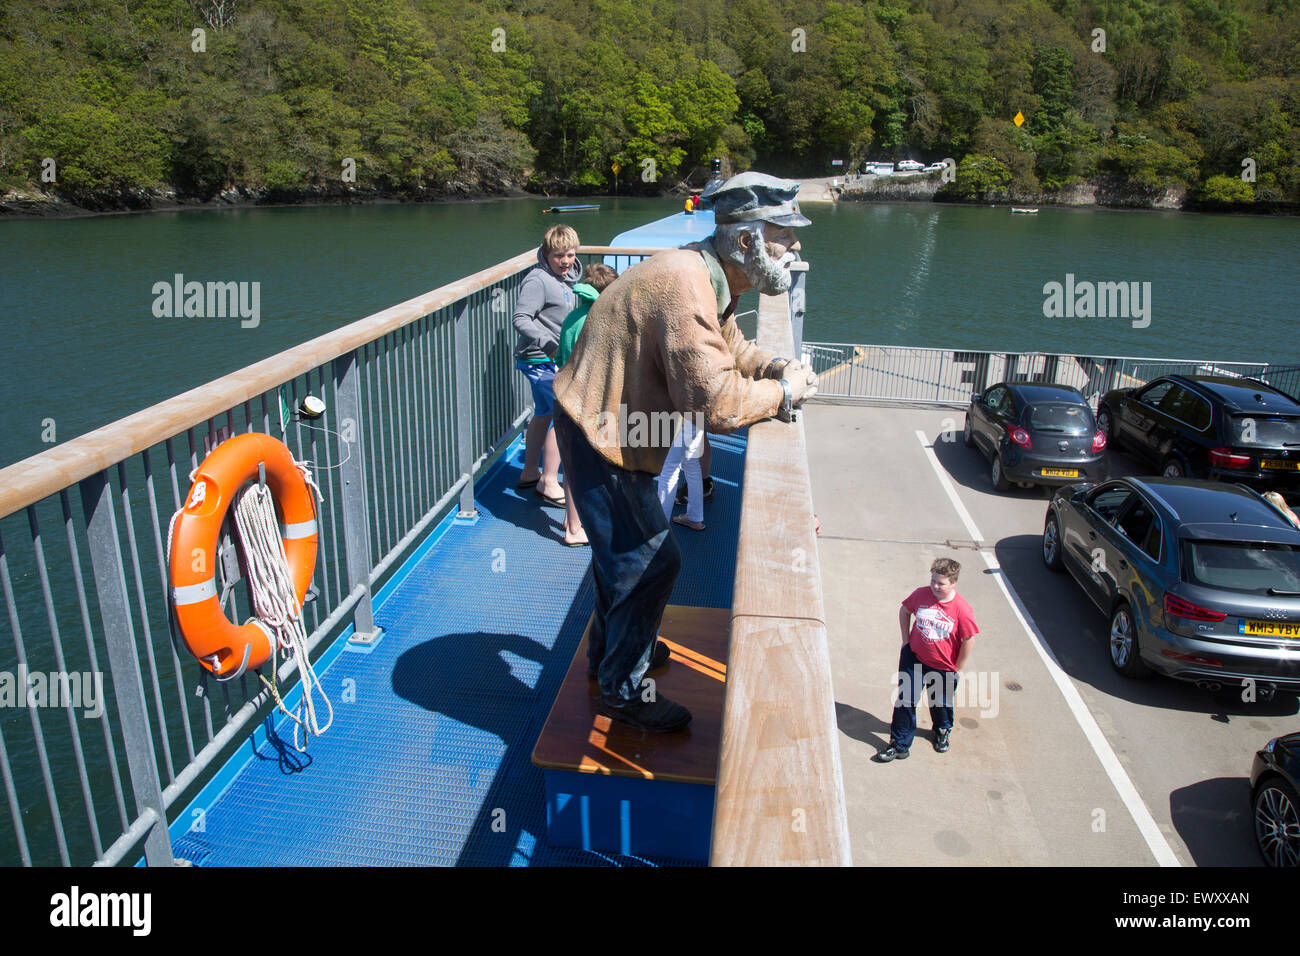 Sculpture of an Old Man on the King Harry Ferry Bridge vehicular chain ferry crossing River Fal, Cornwall, England, Stock Photo